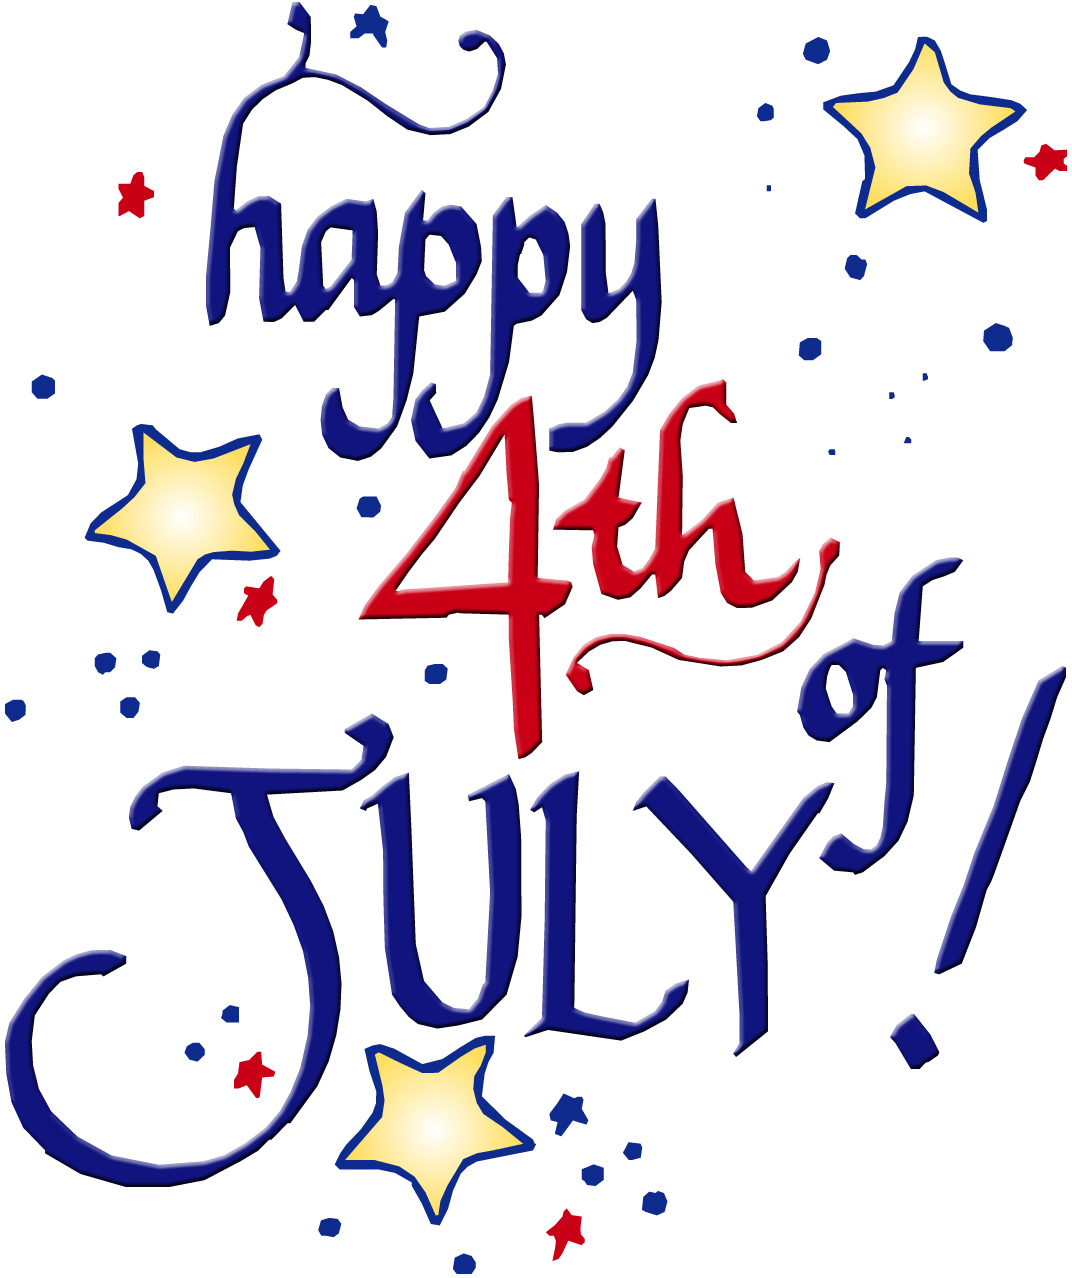 Free Clipart Google Images July 4th Scho-Free Clipart Google Images July 4th School Clipart-7